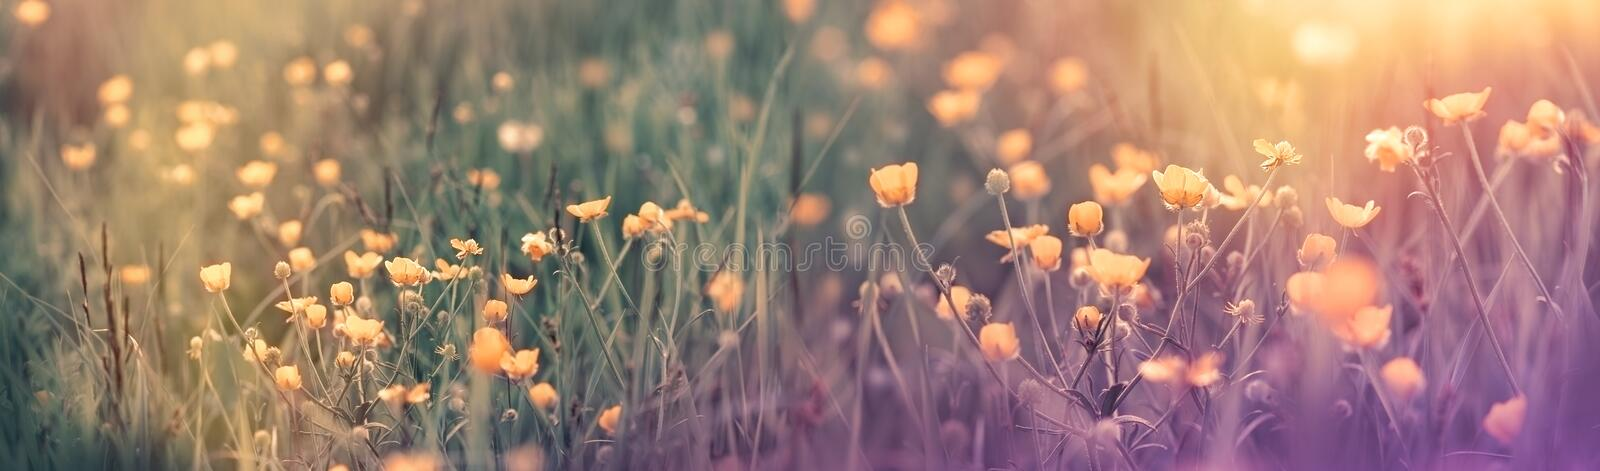 Beautiful flowering spring flower - buttercup flower in spring time stock photo